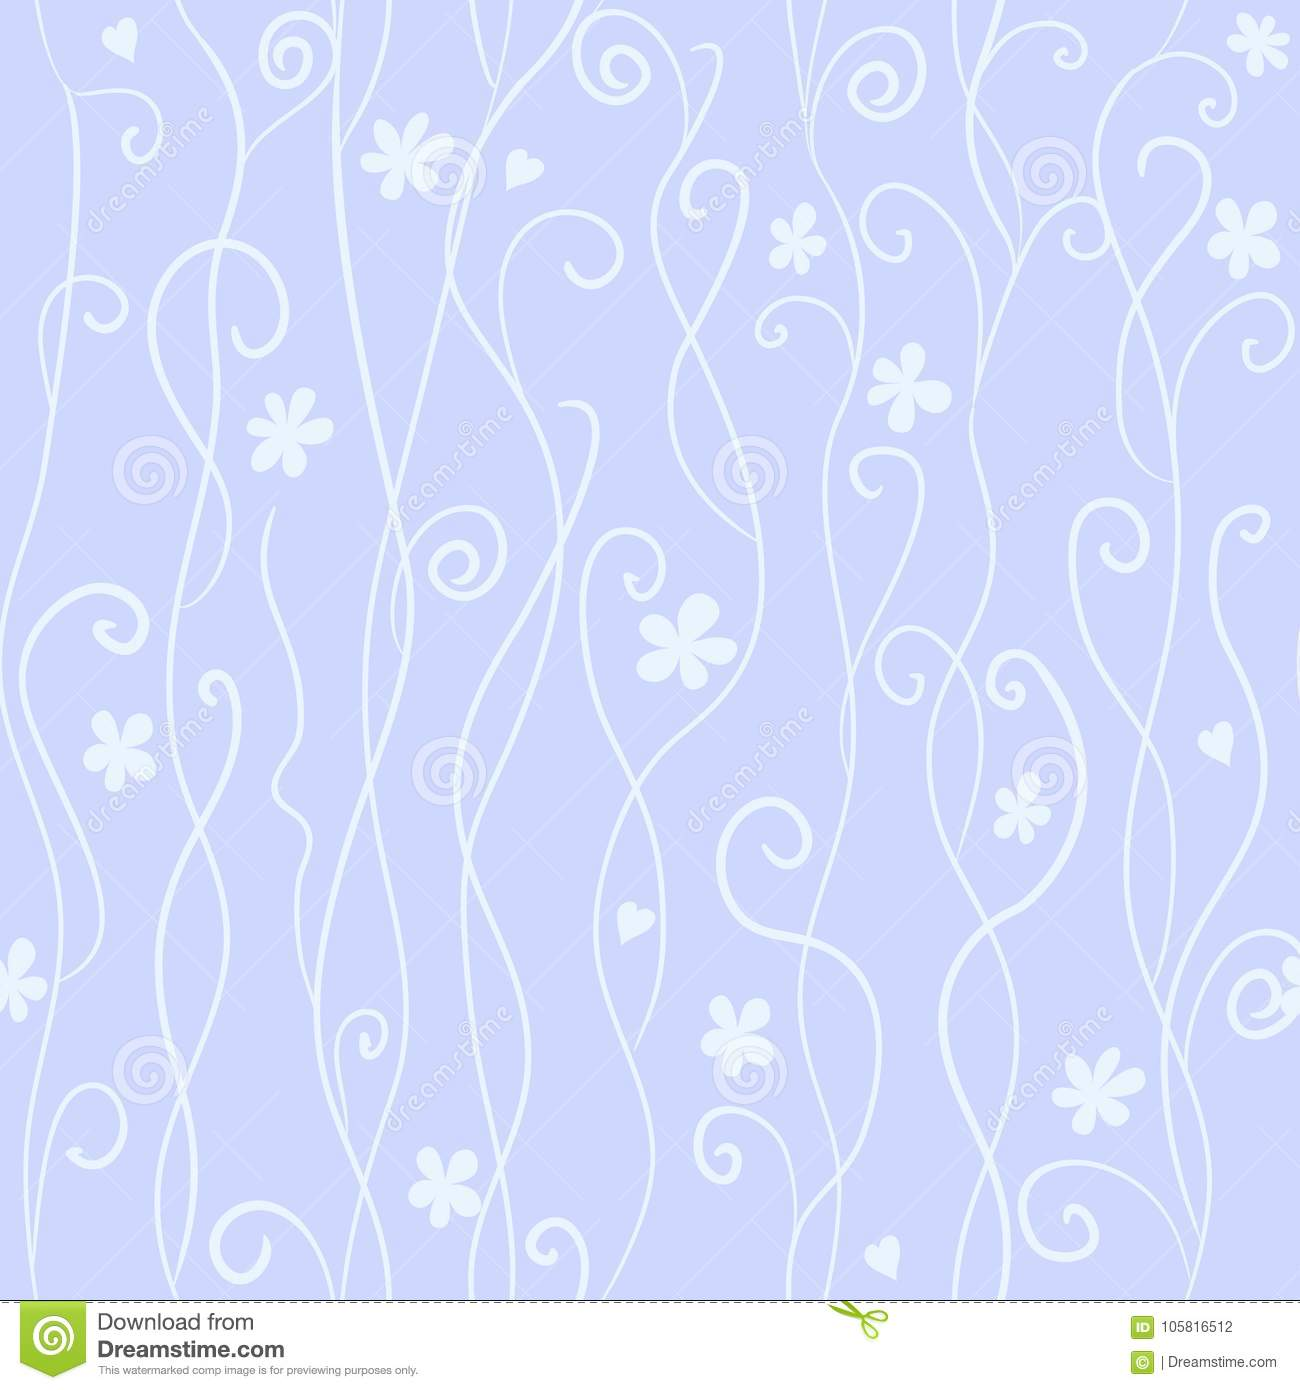 Seamless pattern with cute pink and black swirls and hearts